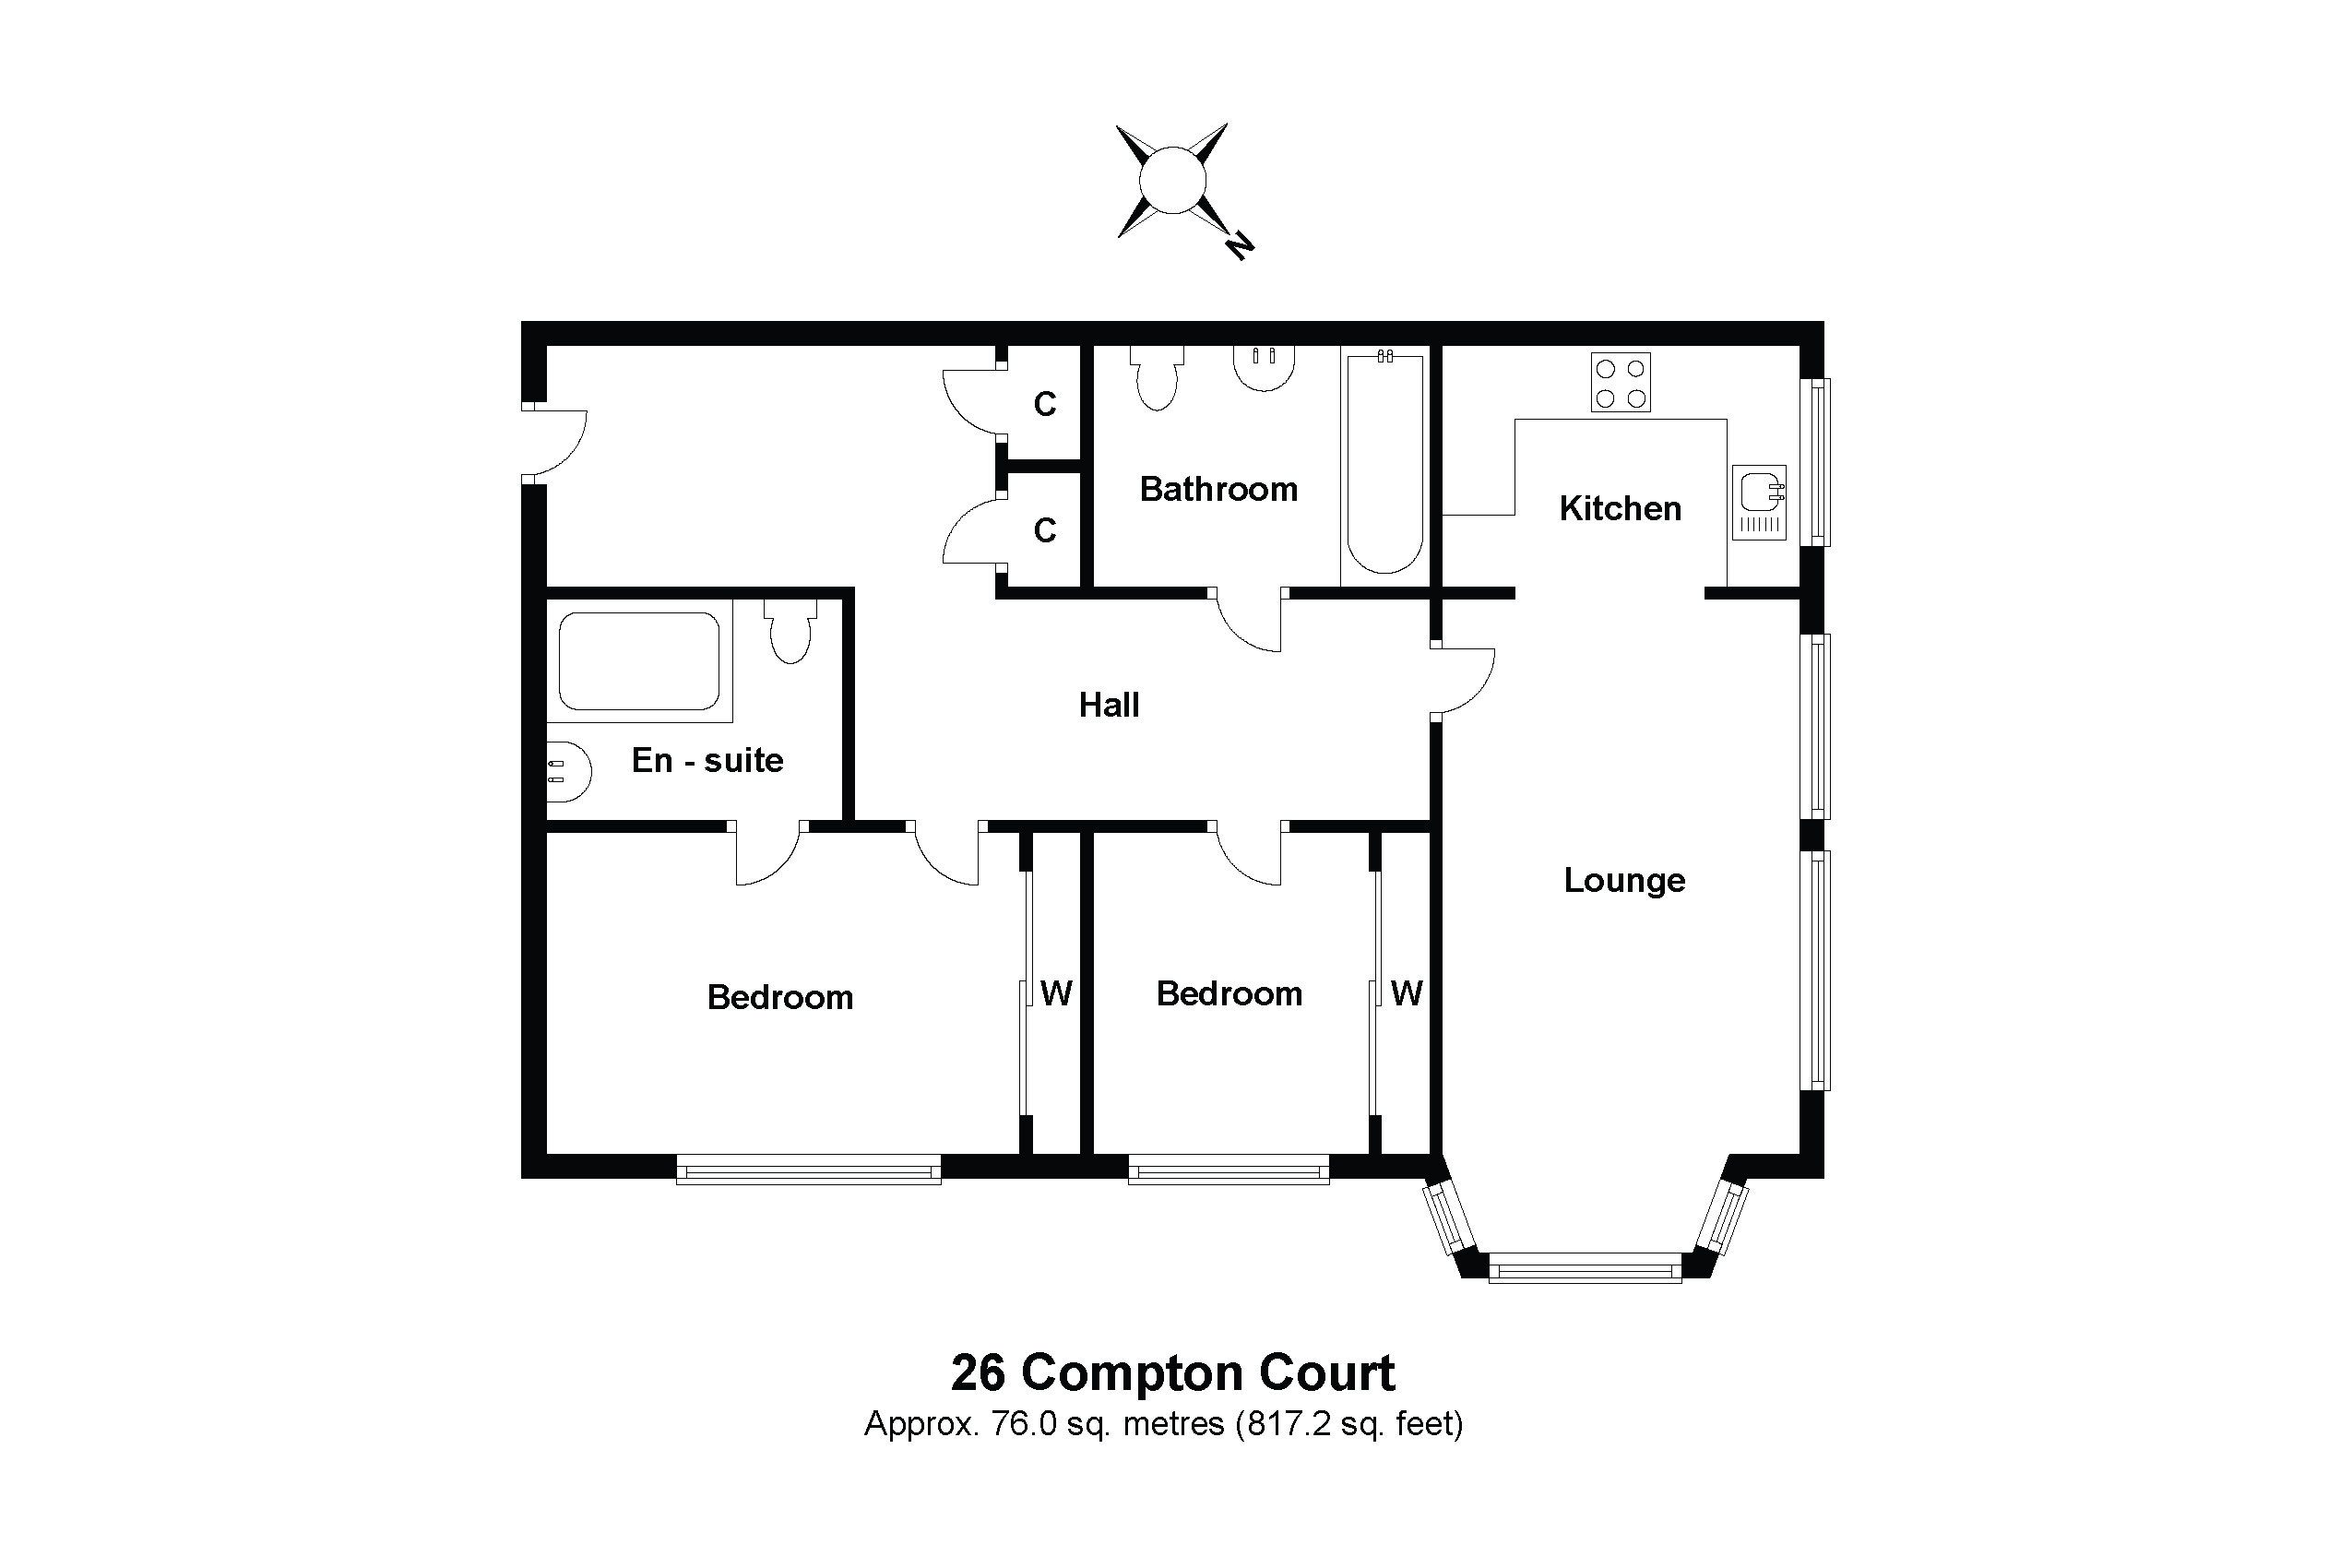 26 Compton Court Floorplan